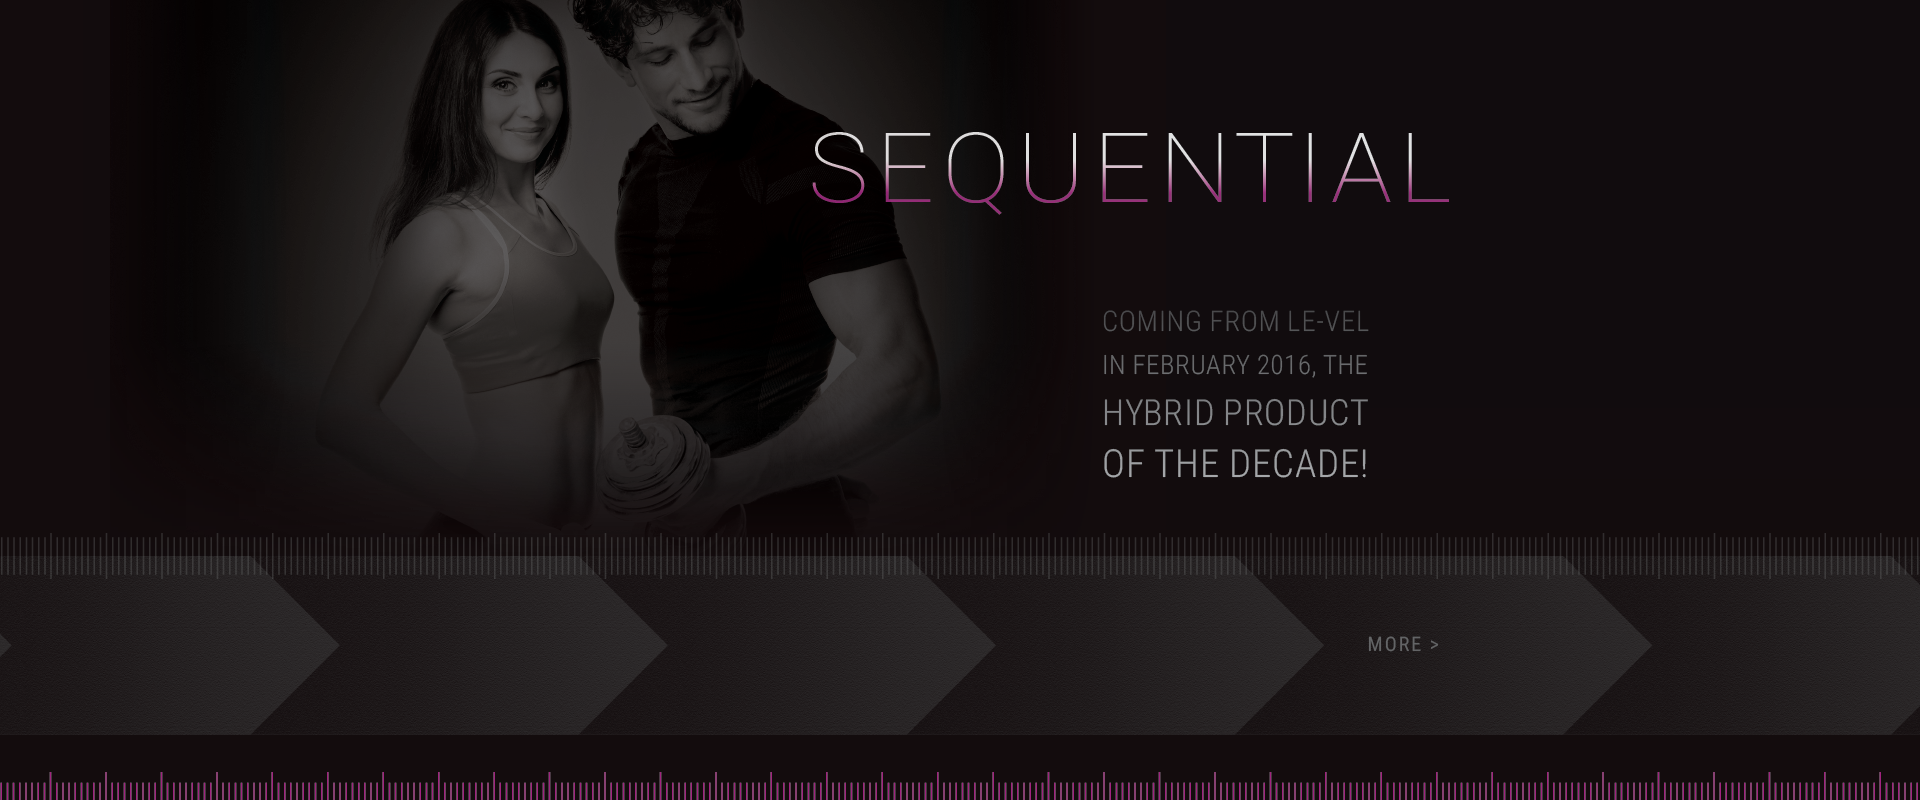 Sequential - The Hybrid Product of the Decade!